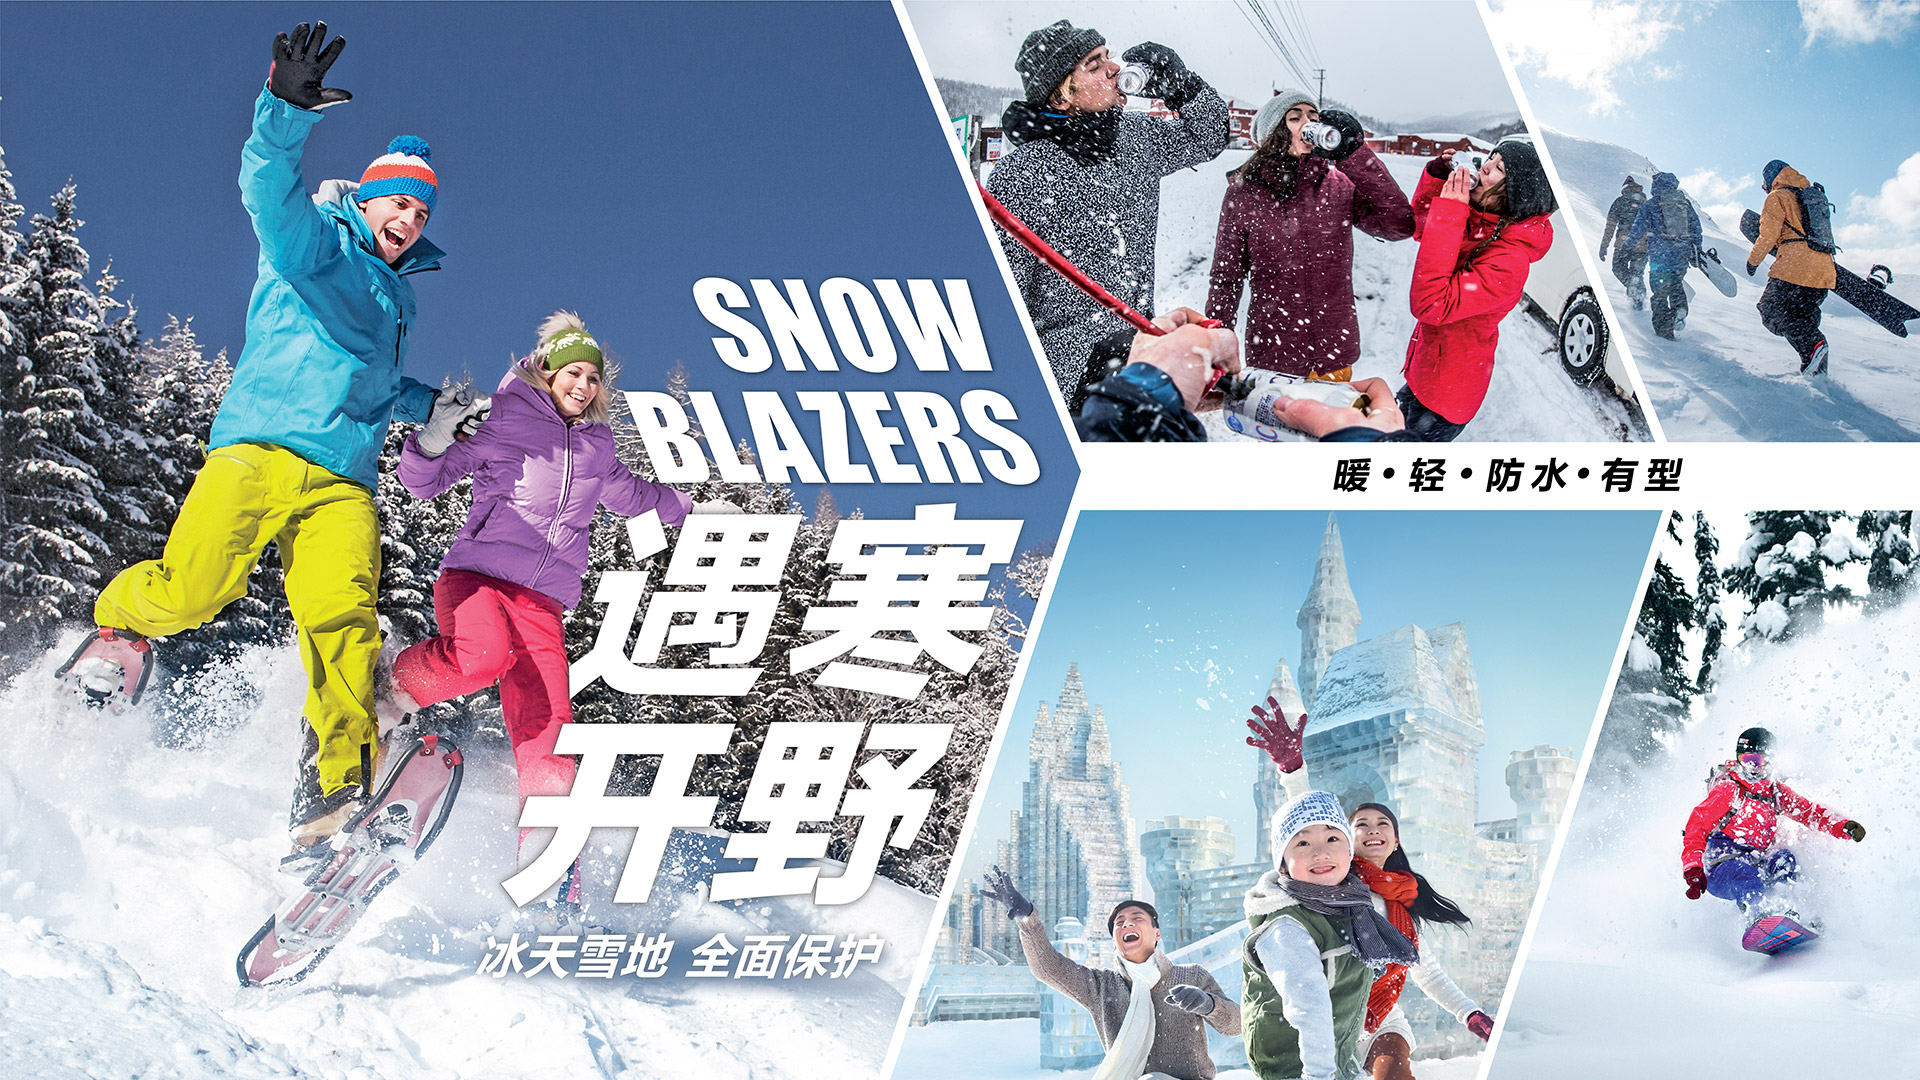 The North Face 北面营的海报图